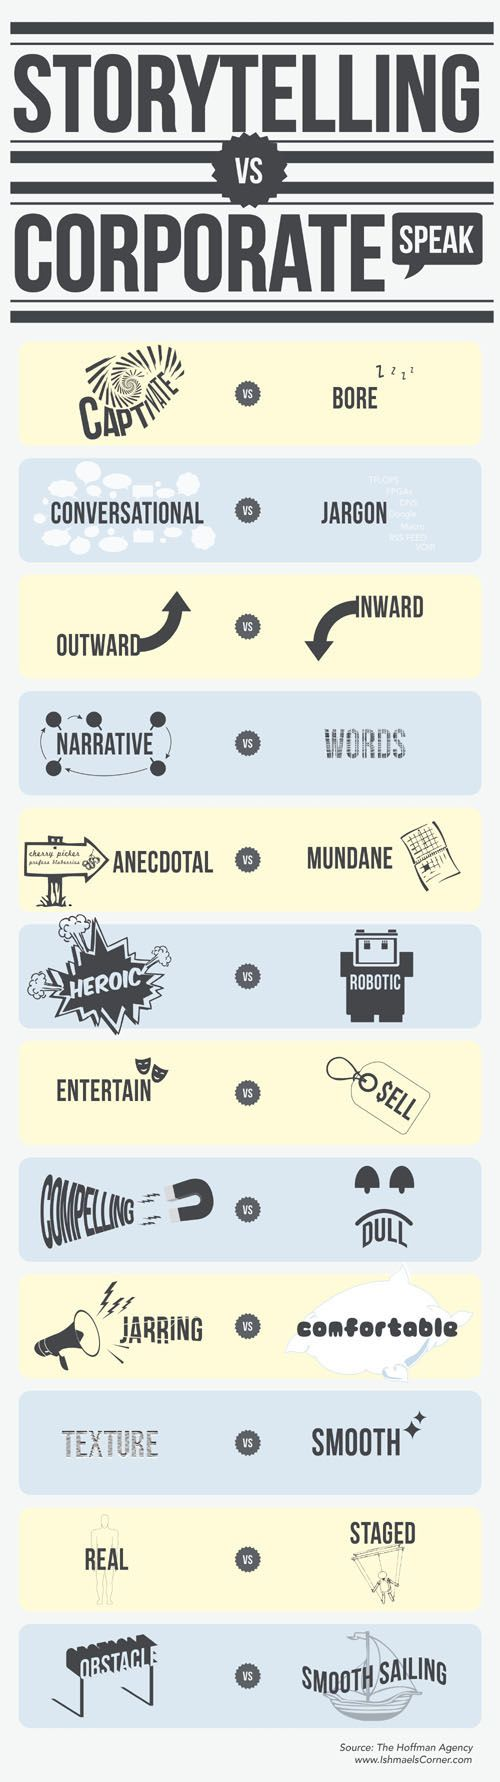 Storytelling vs Corporate Speak Info graphic - for Nonprofits too